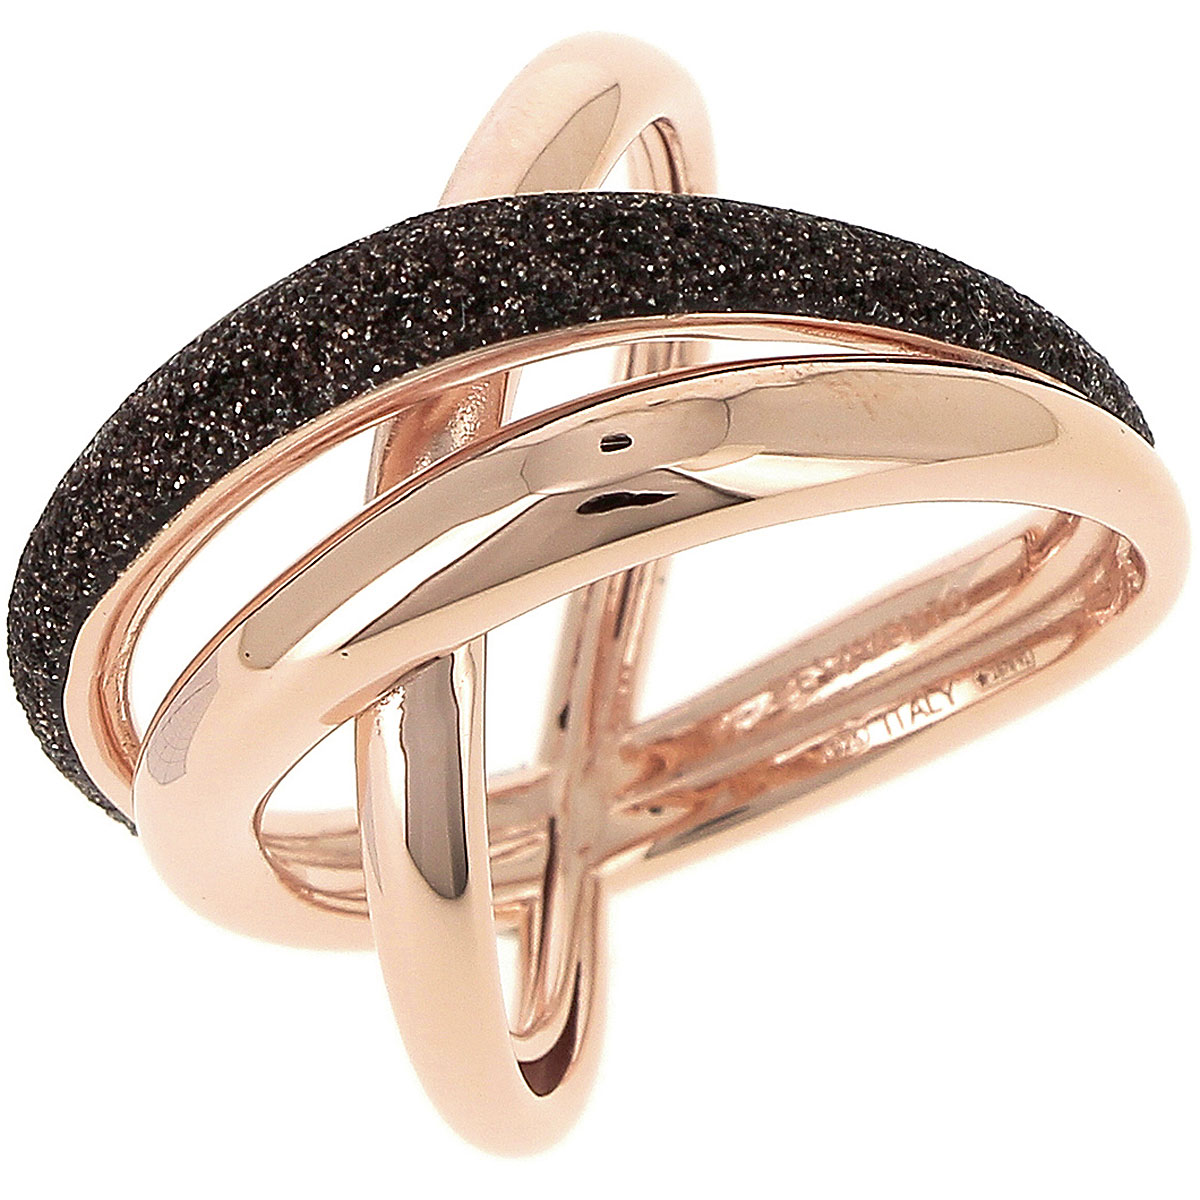 Pesavento Ring for Women On Sale, Gold Pink, Silver 925, 2019